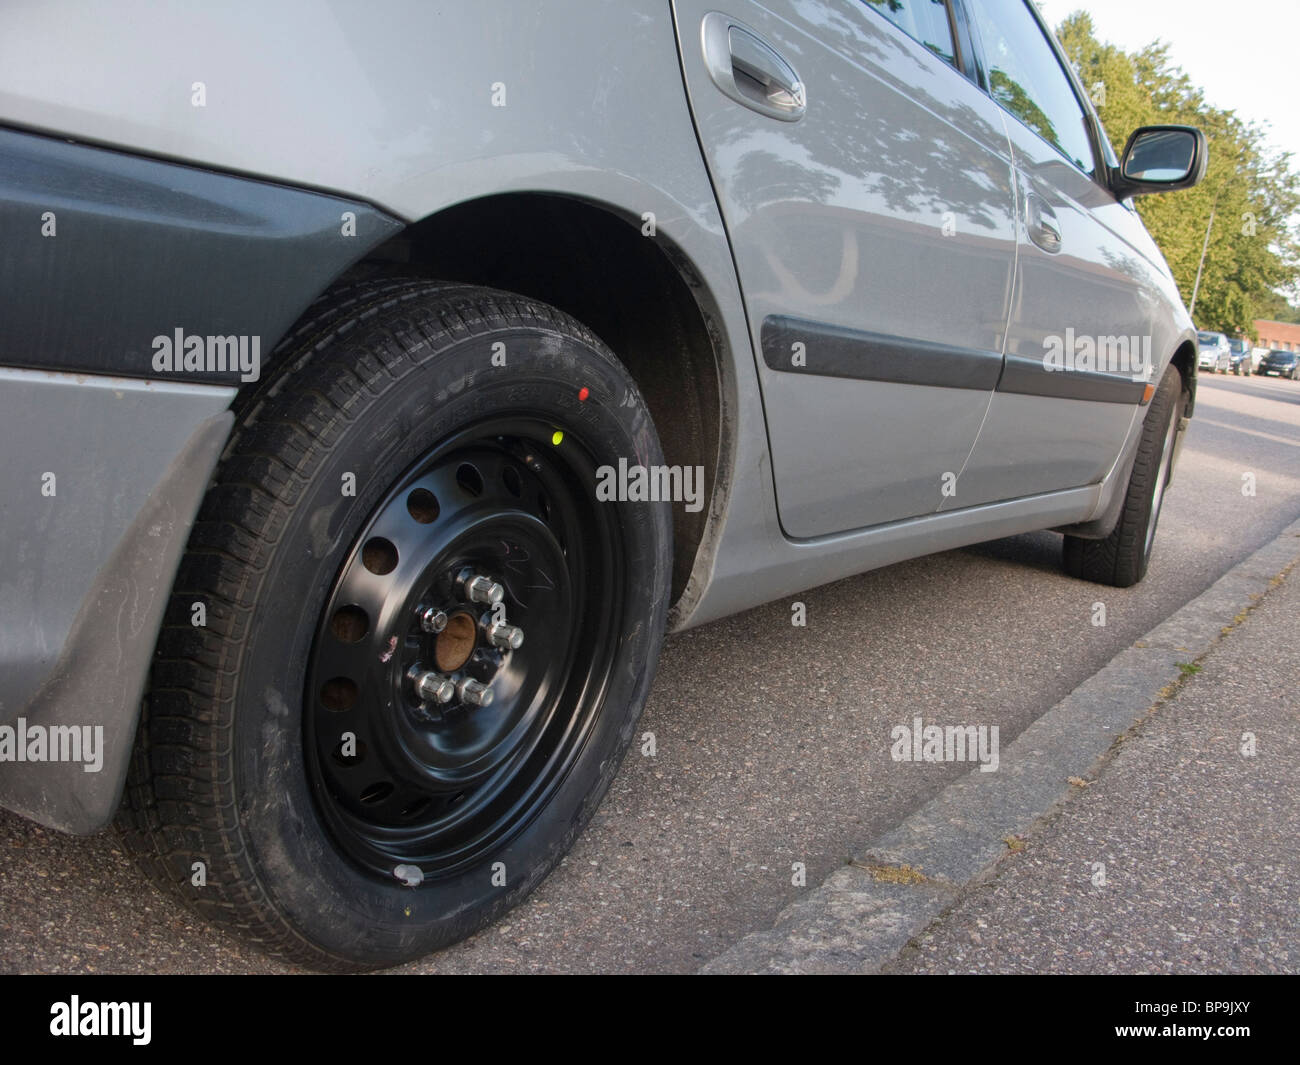 The spare tyre has been put on a car that has had a puncture on its rear right wheel. - Stock Image